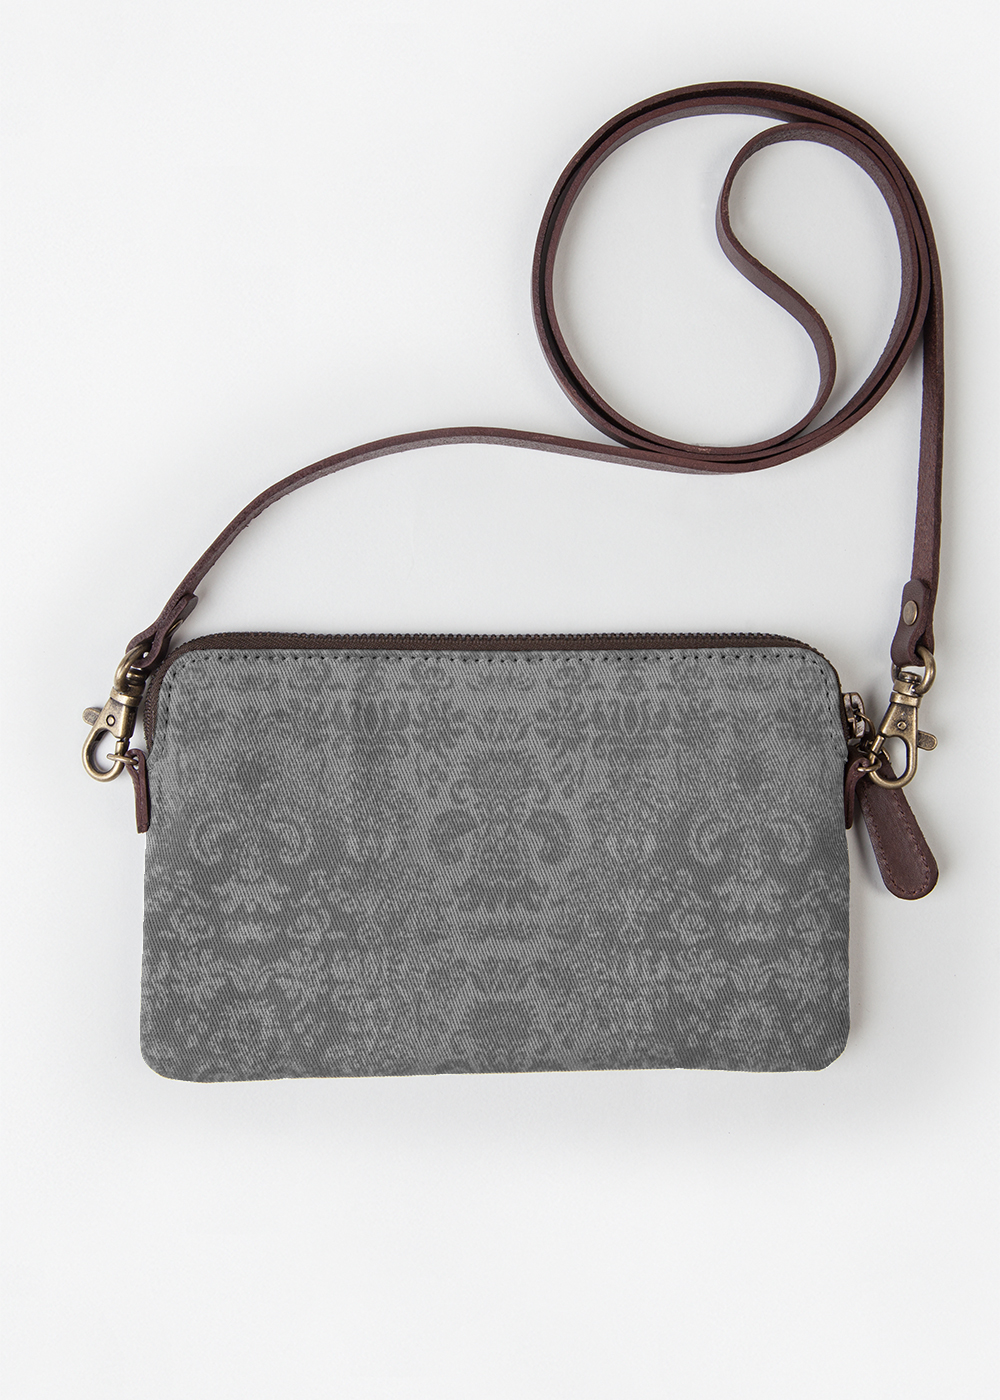 VIDA Statement Clutch - Paisley in gold by VIDA COZkBOA5